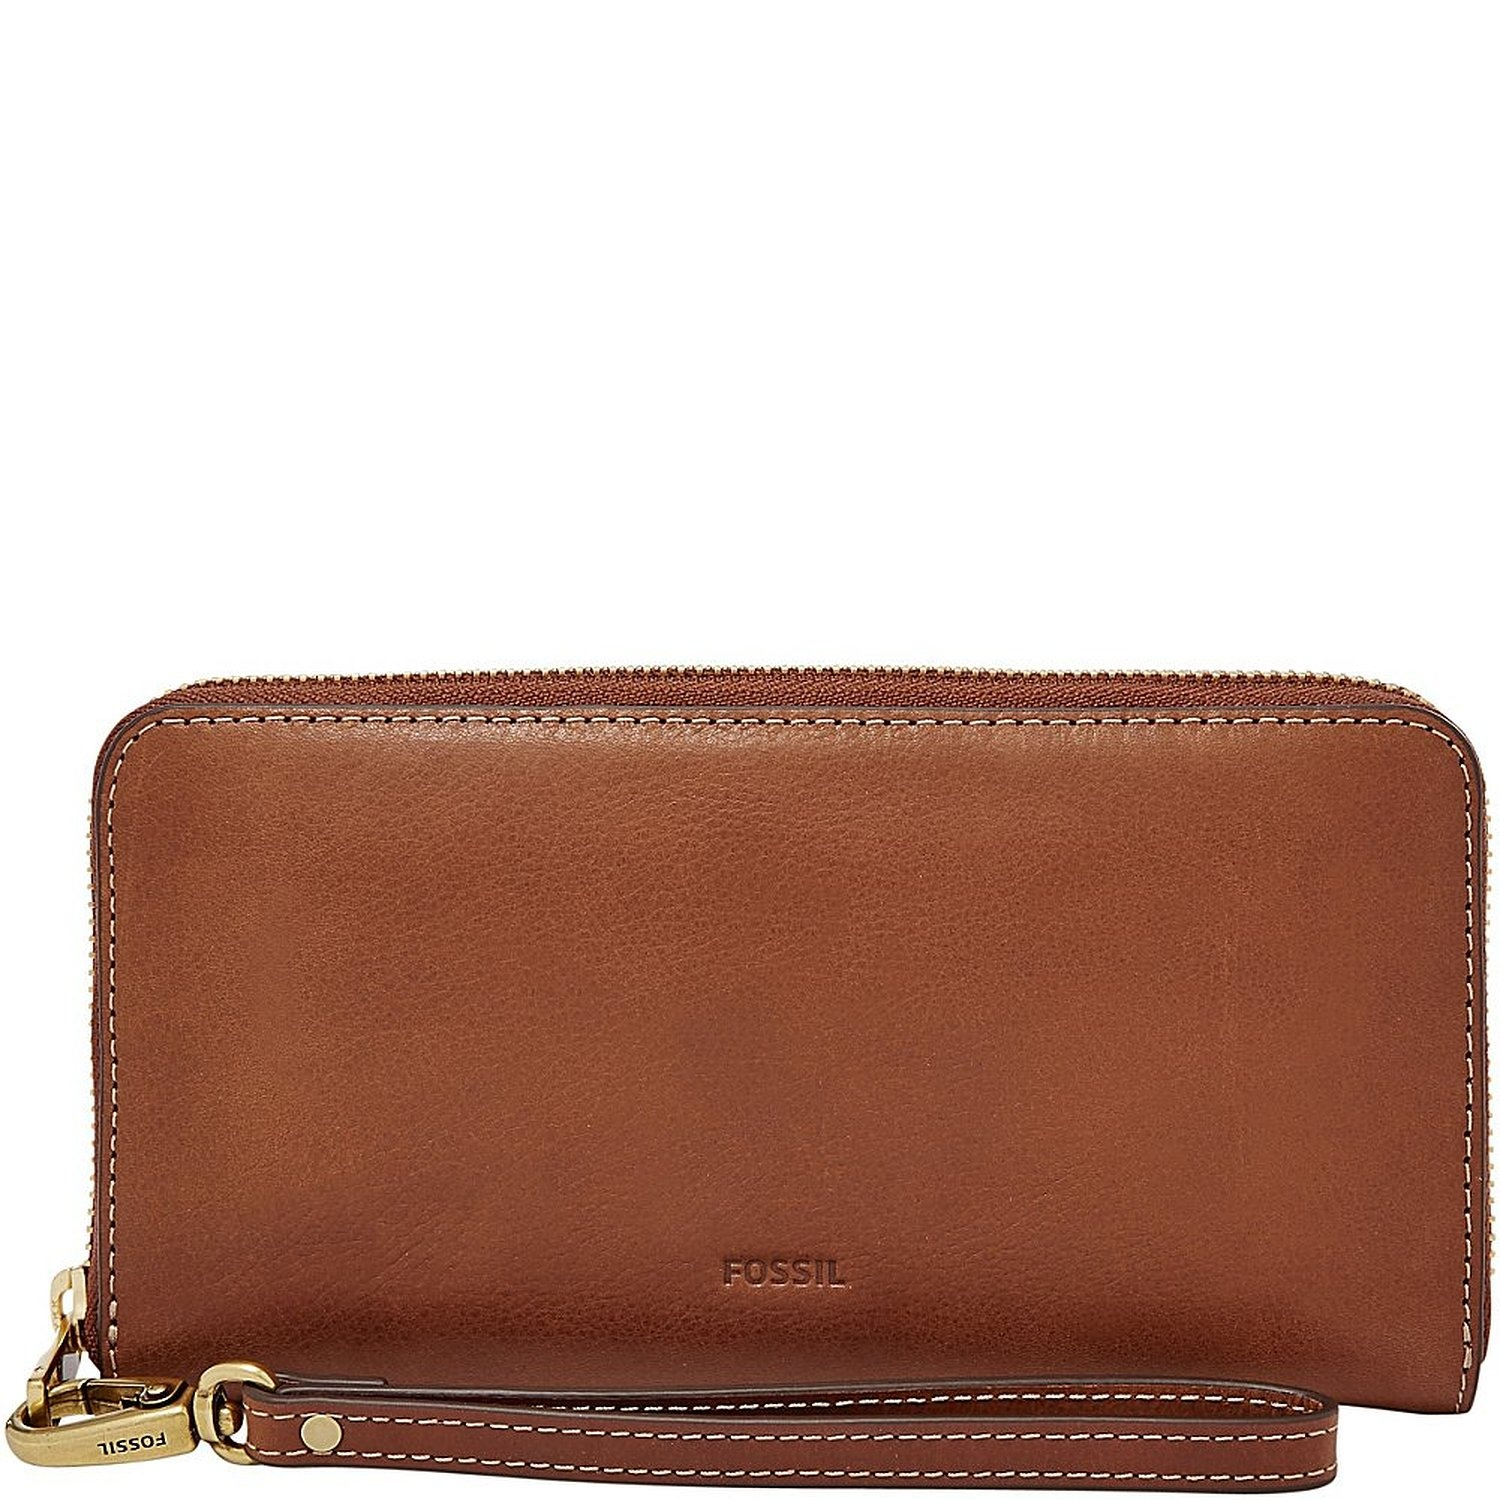 174676da2114a Fossil Wallets Bags  Buy Online from Fishpond.co.nz